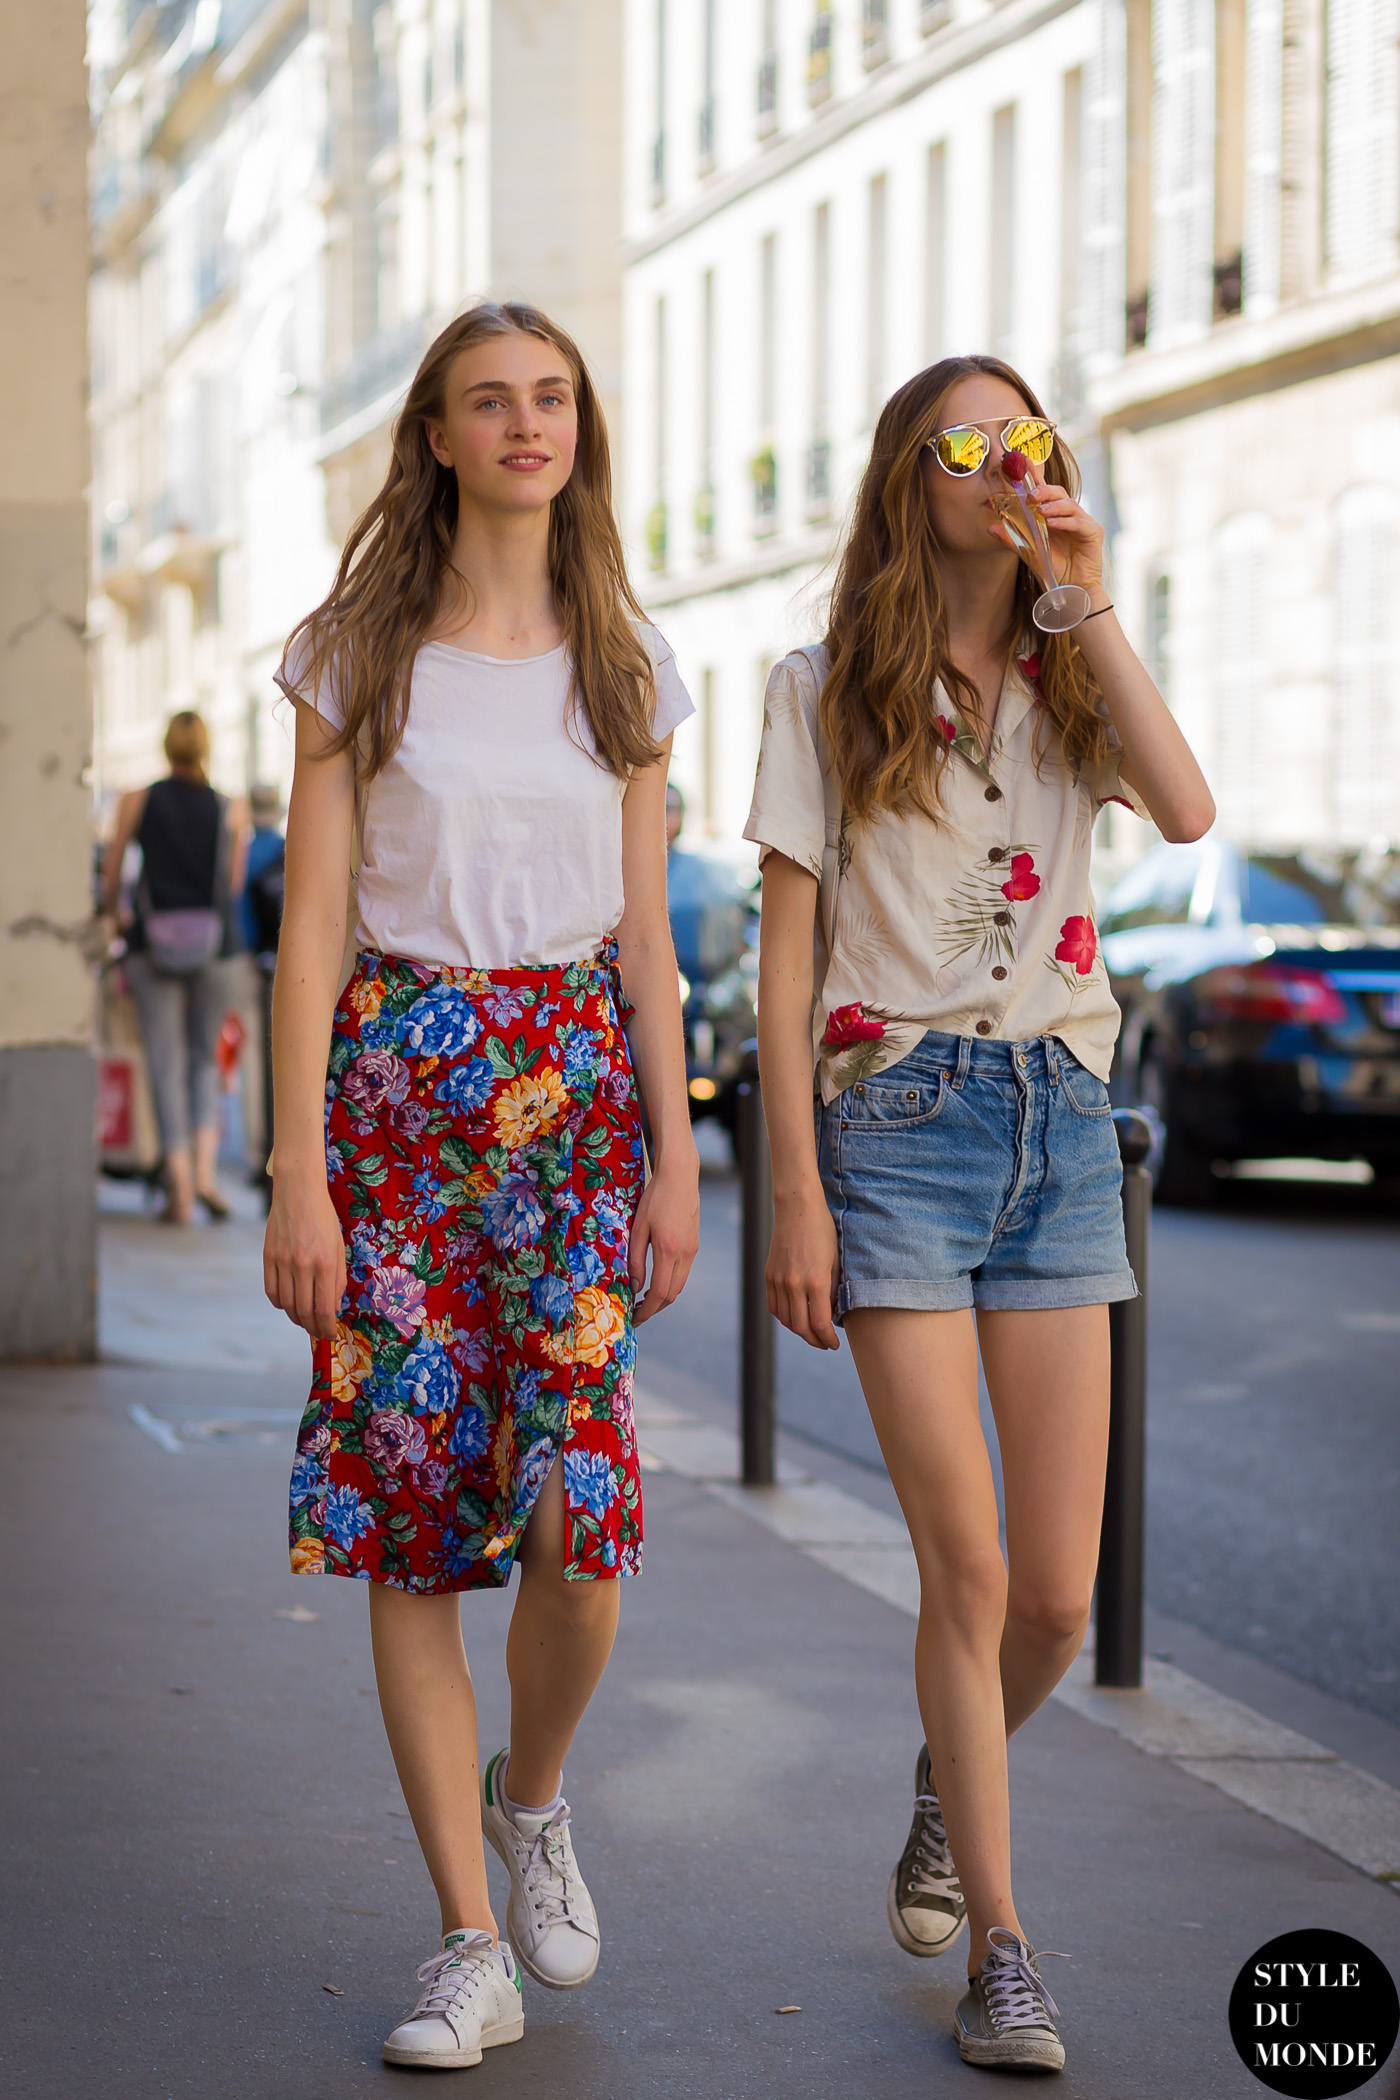 Hedvig Palm and Emmy Rappe Street Style Street Fashion Streetsnaps by STYLEDUMONDE Street Style Fashion Photography